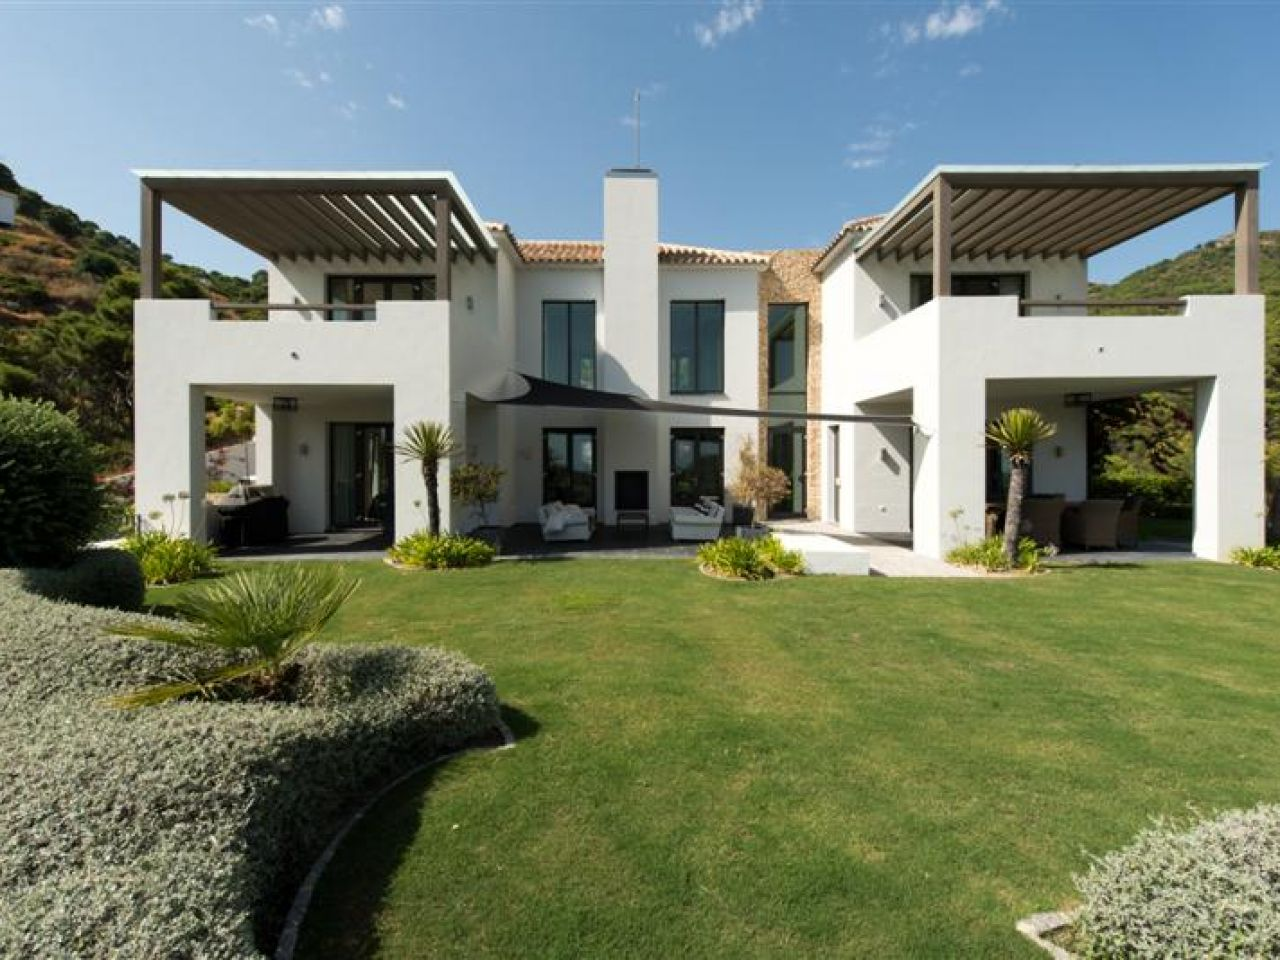 Maison unifamiliale pour l Vente à contemporary villa in Monte Mayor Benahavis, Costa Del Sol, Espagne